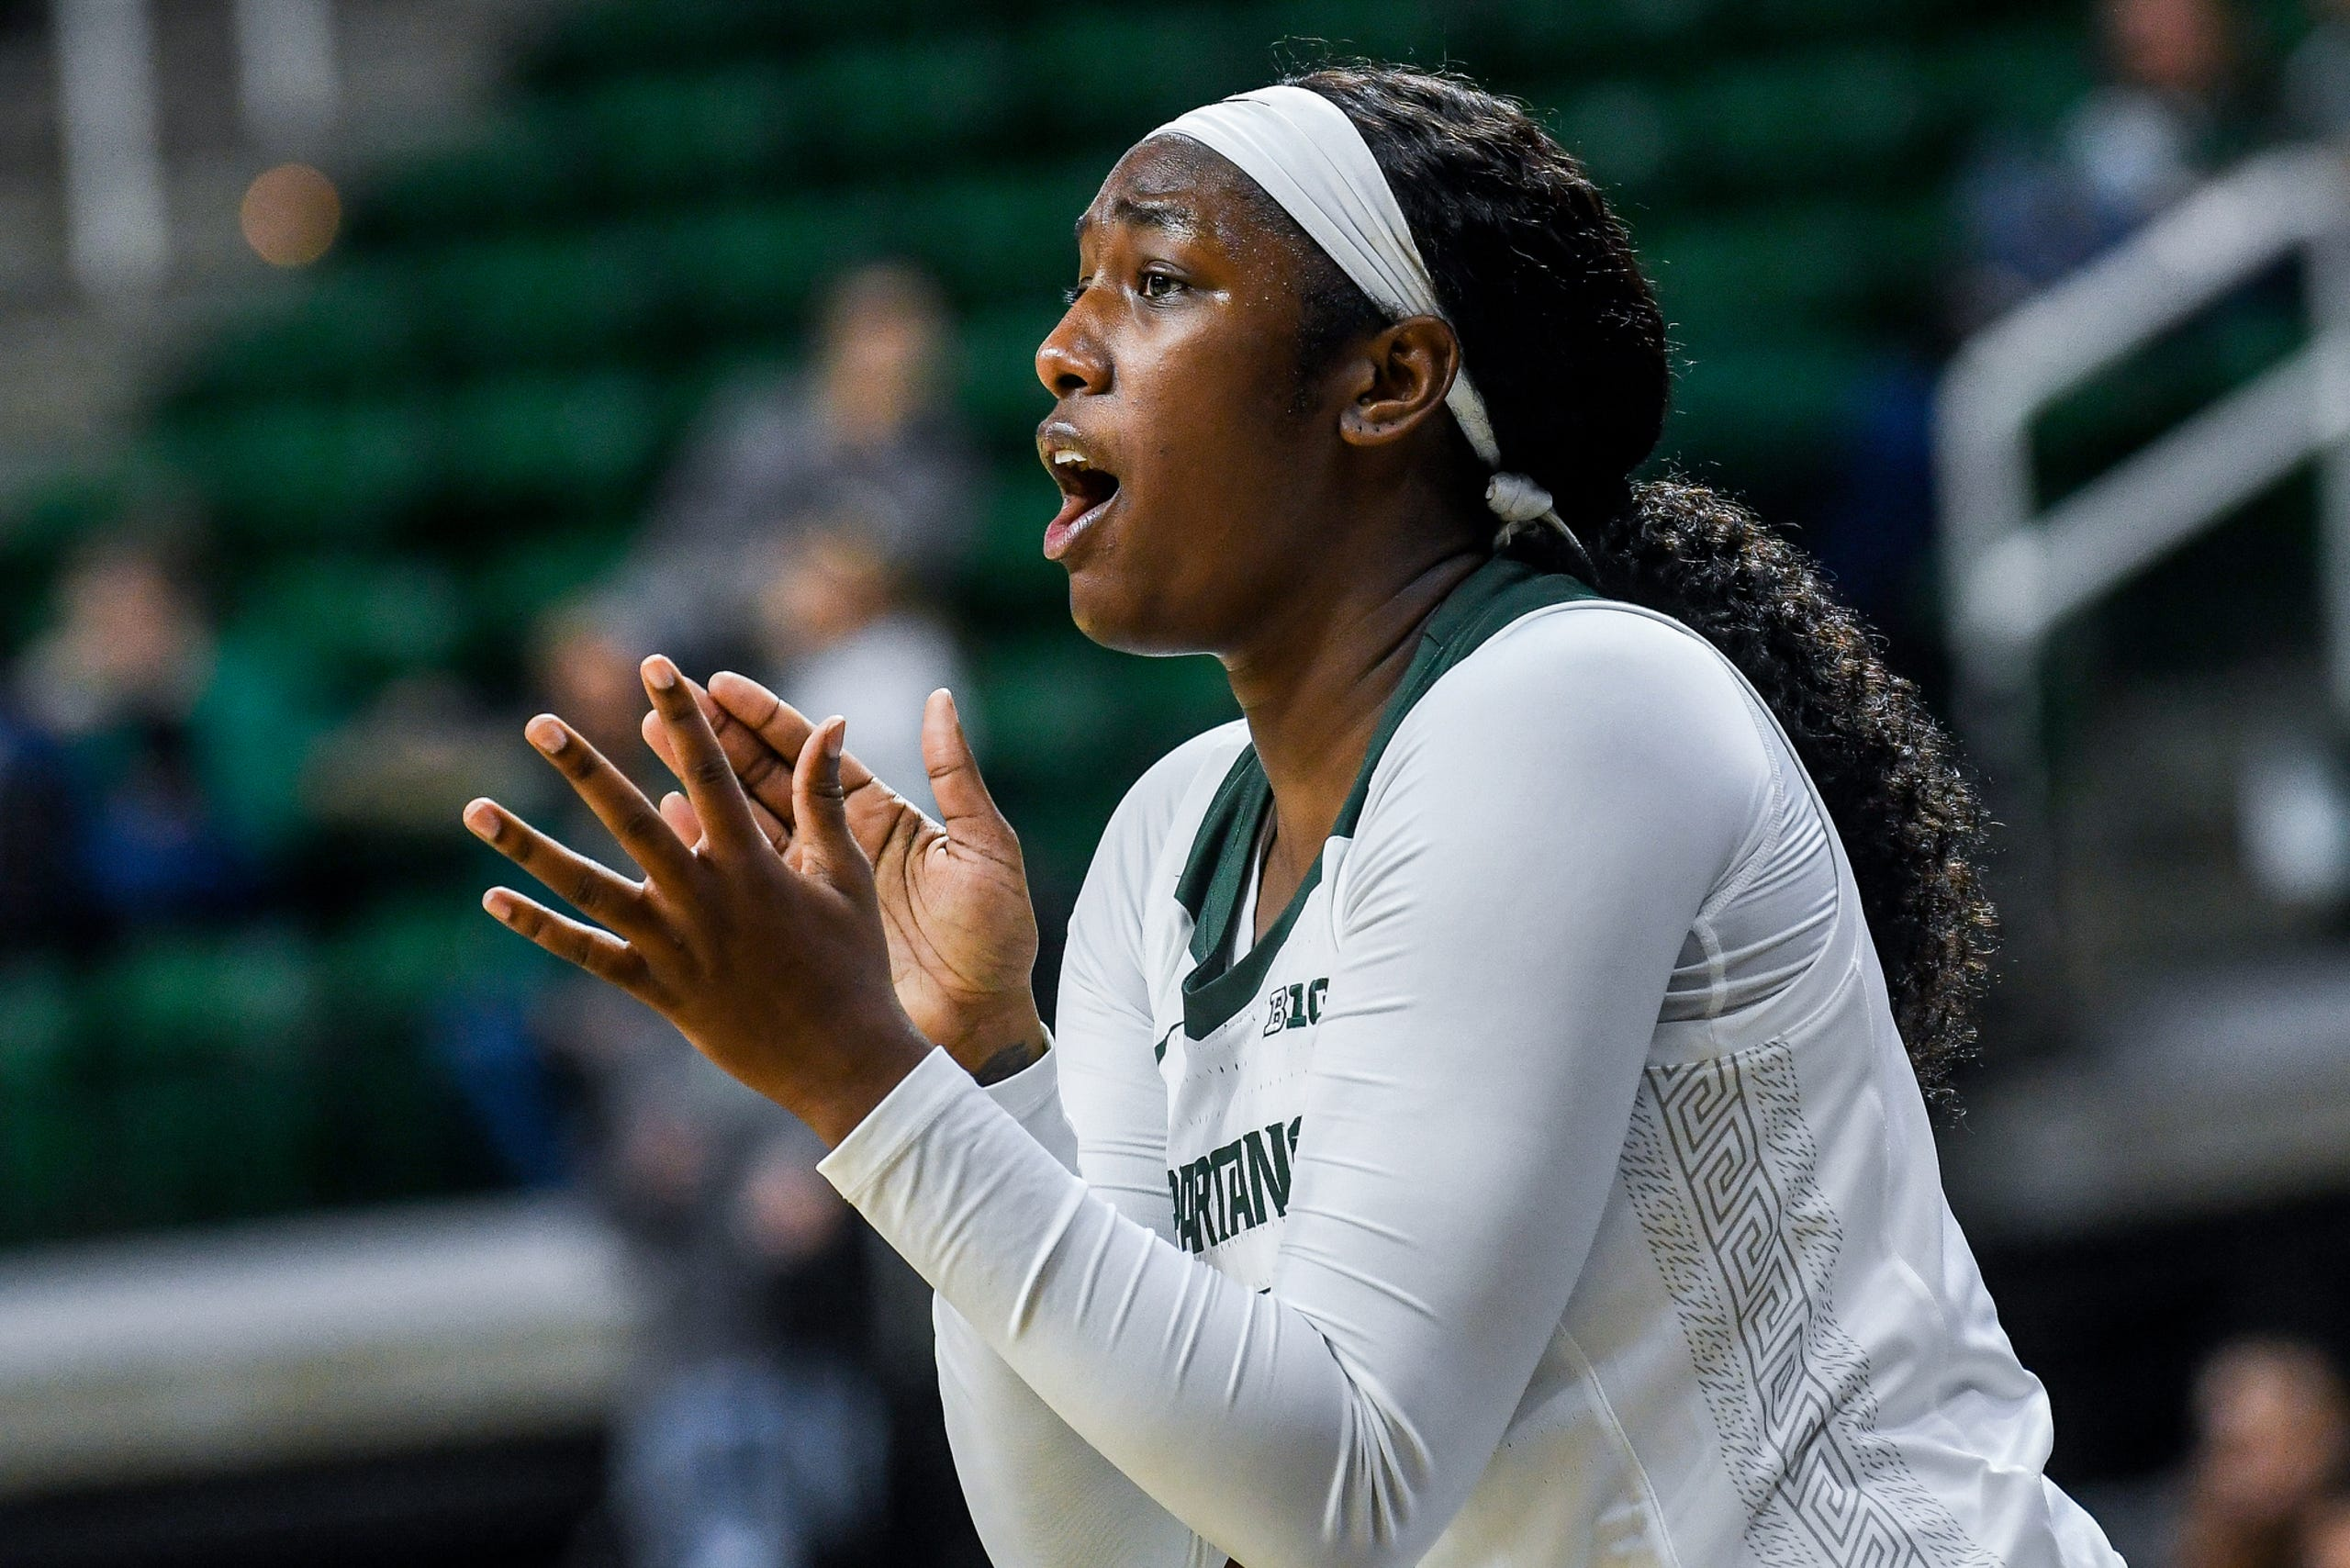 Michigan State's Victoria Gaines cheers on her teammates during the second quarter on Tuesday, Nov. 5, 2019, at the Breslin Center in East Lansing.